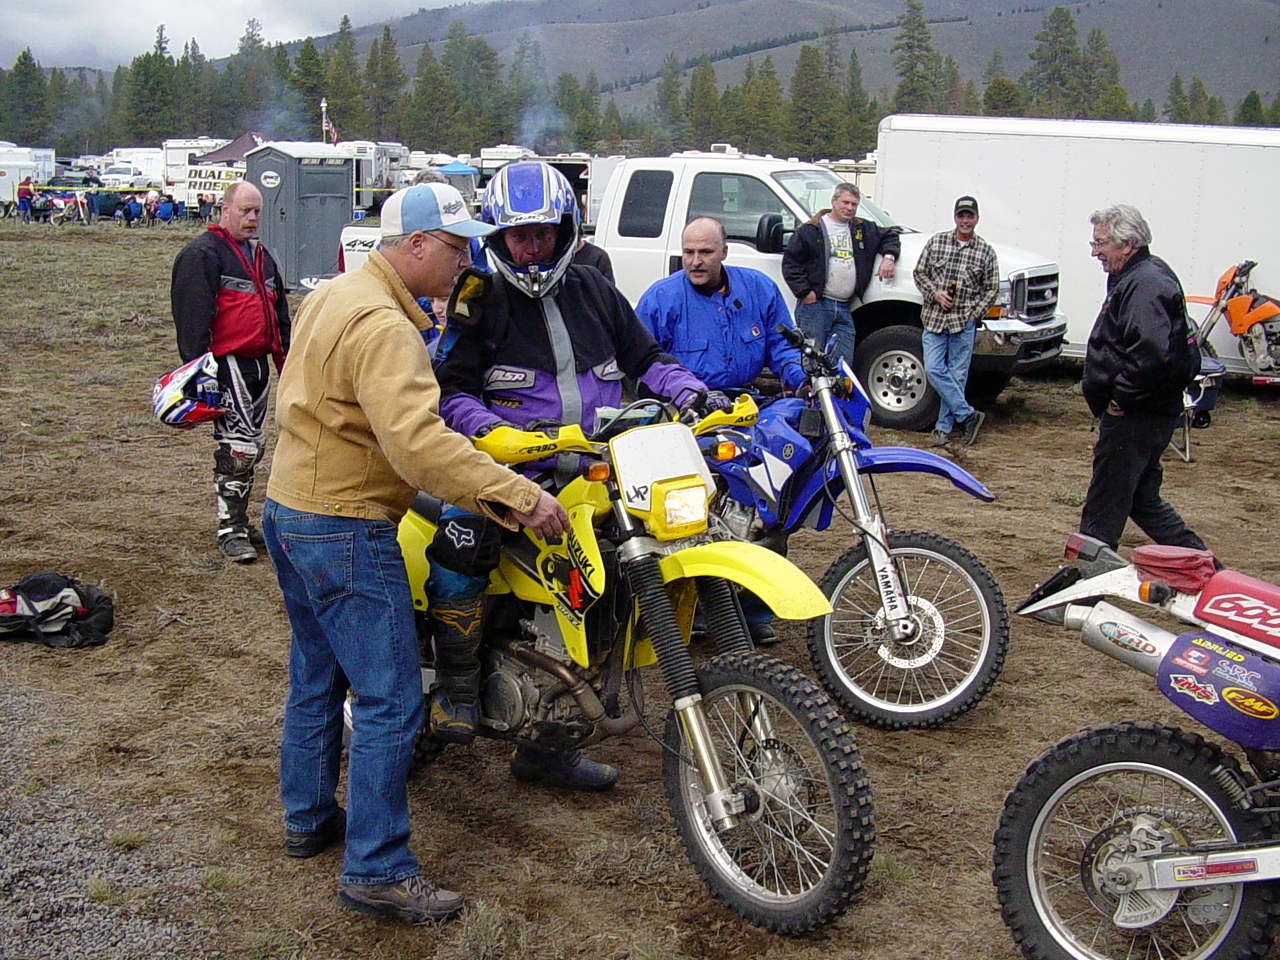 "<font size=""+1"">My buddy, Tom, trying to convince the tech inspector that he actually has a motorcycle endorsement on his drivers license.. </font>"